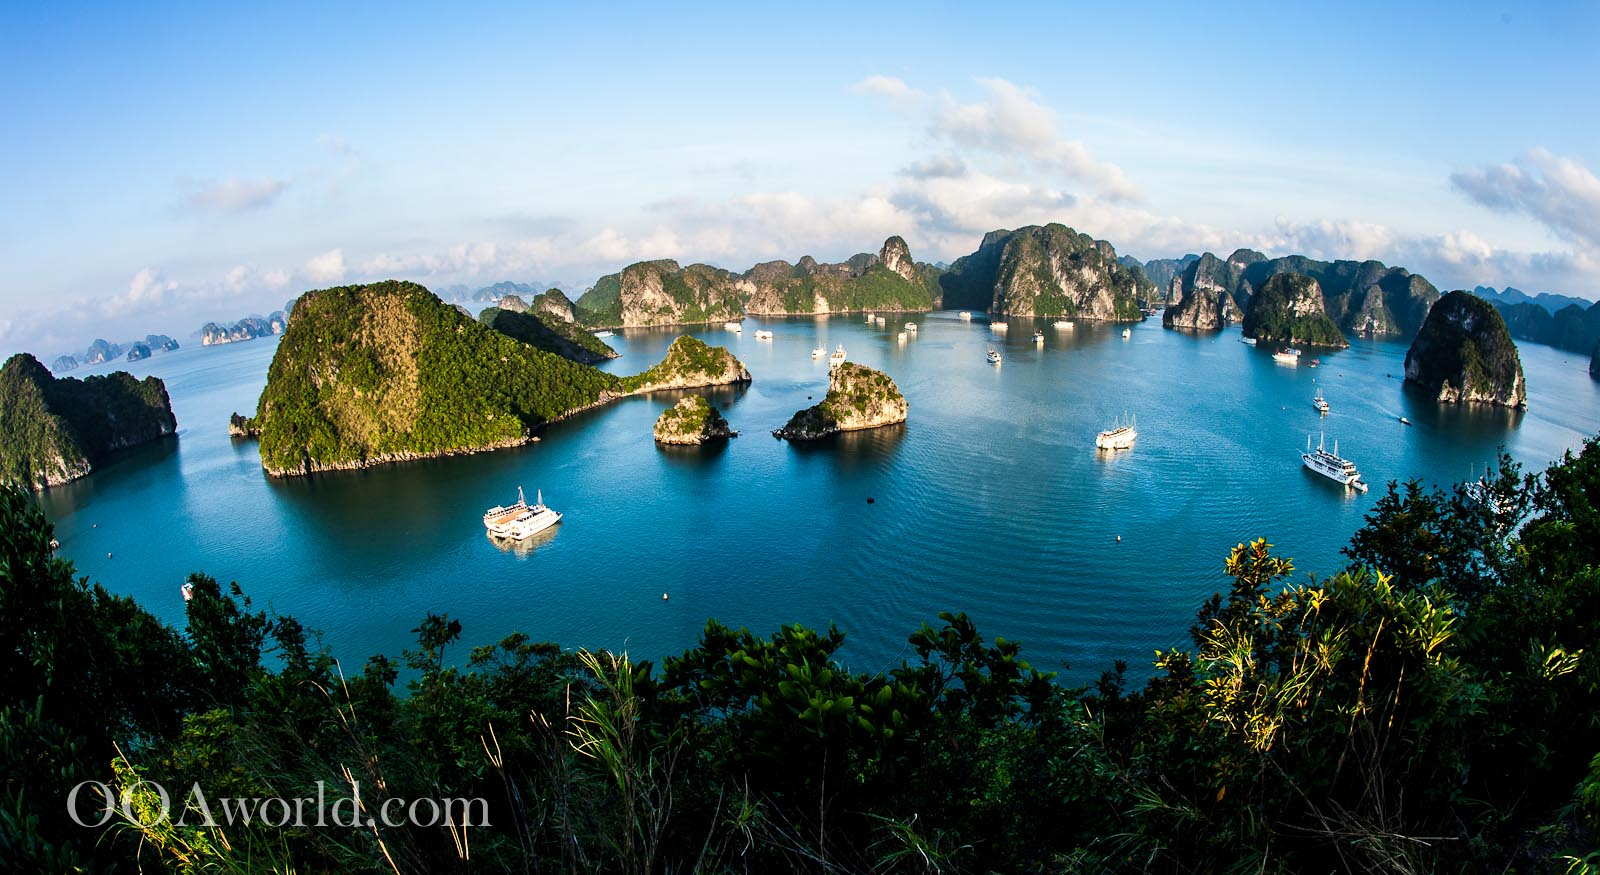 Halong Bay Vietnam Overnight Cruise Photo Ooaworld